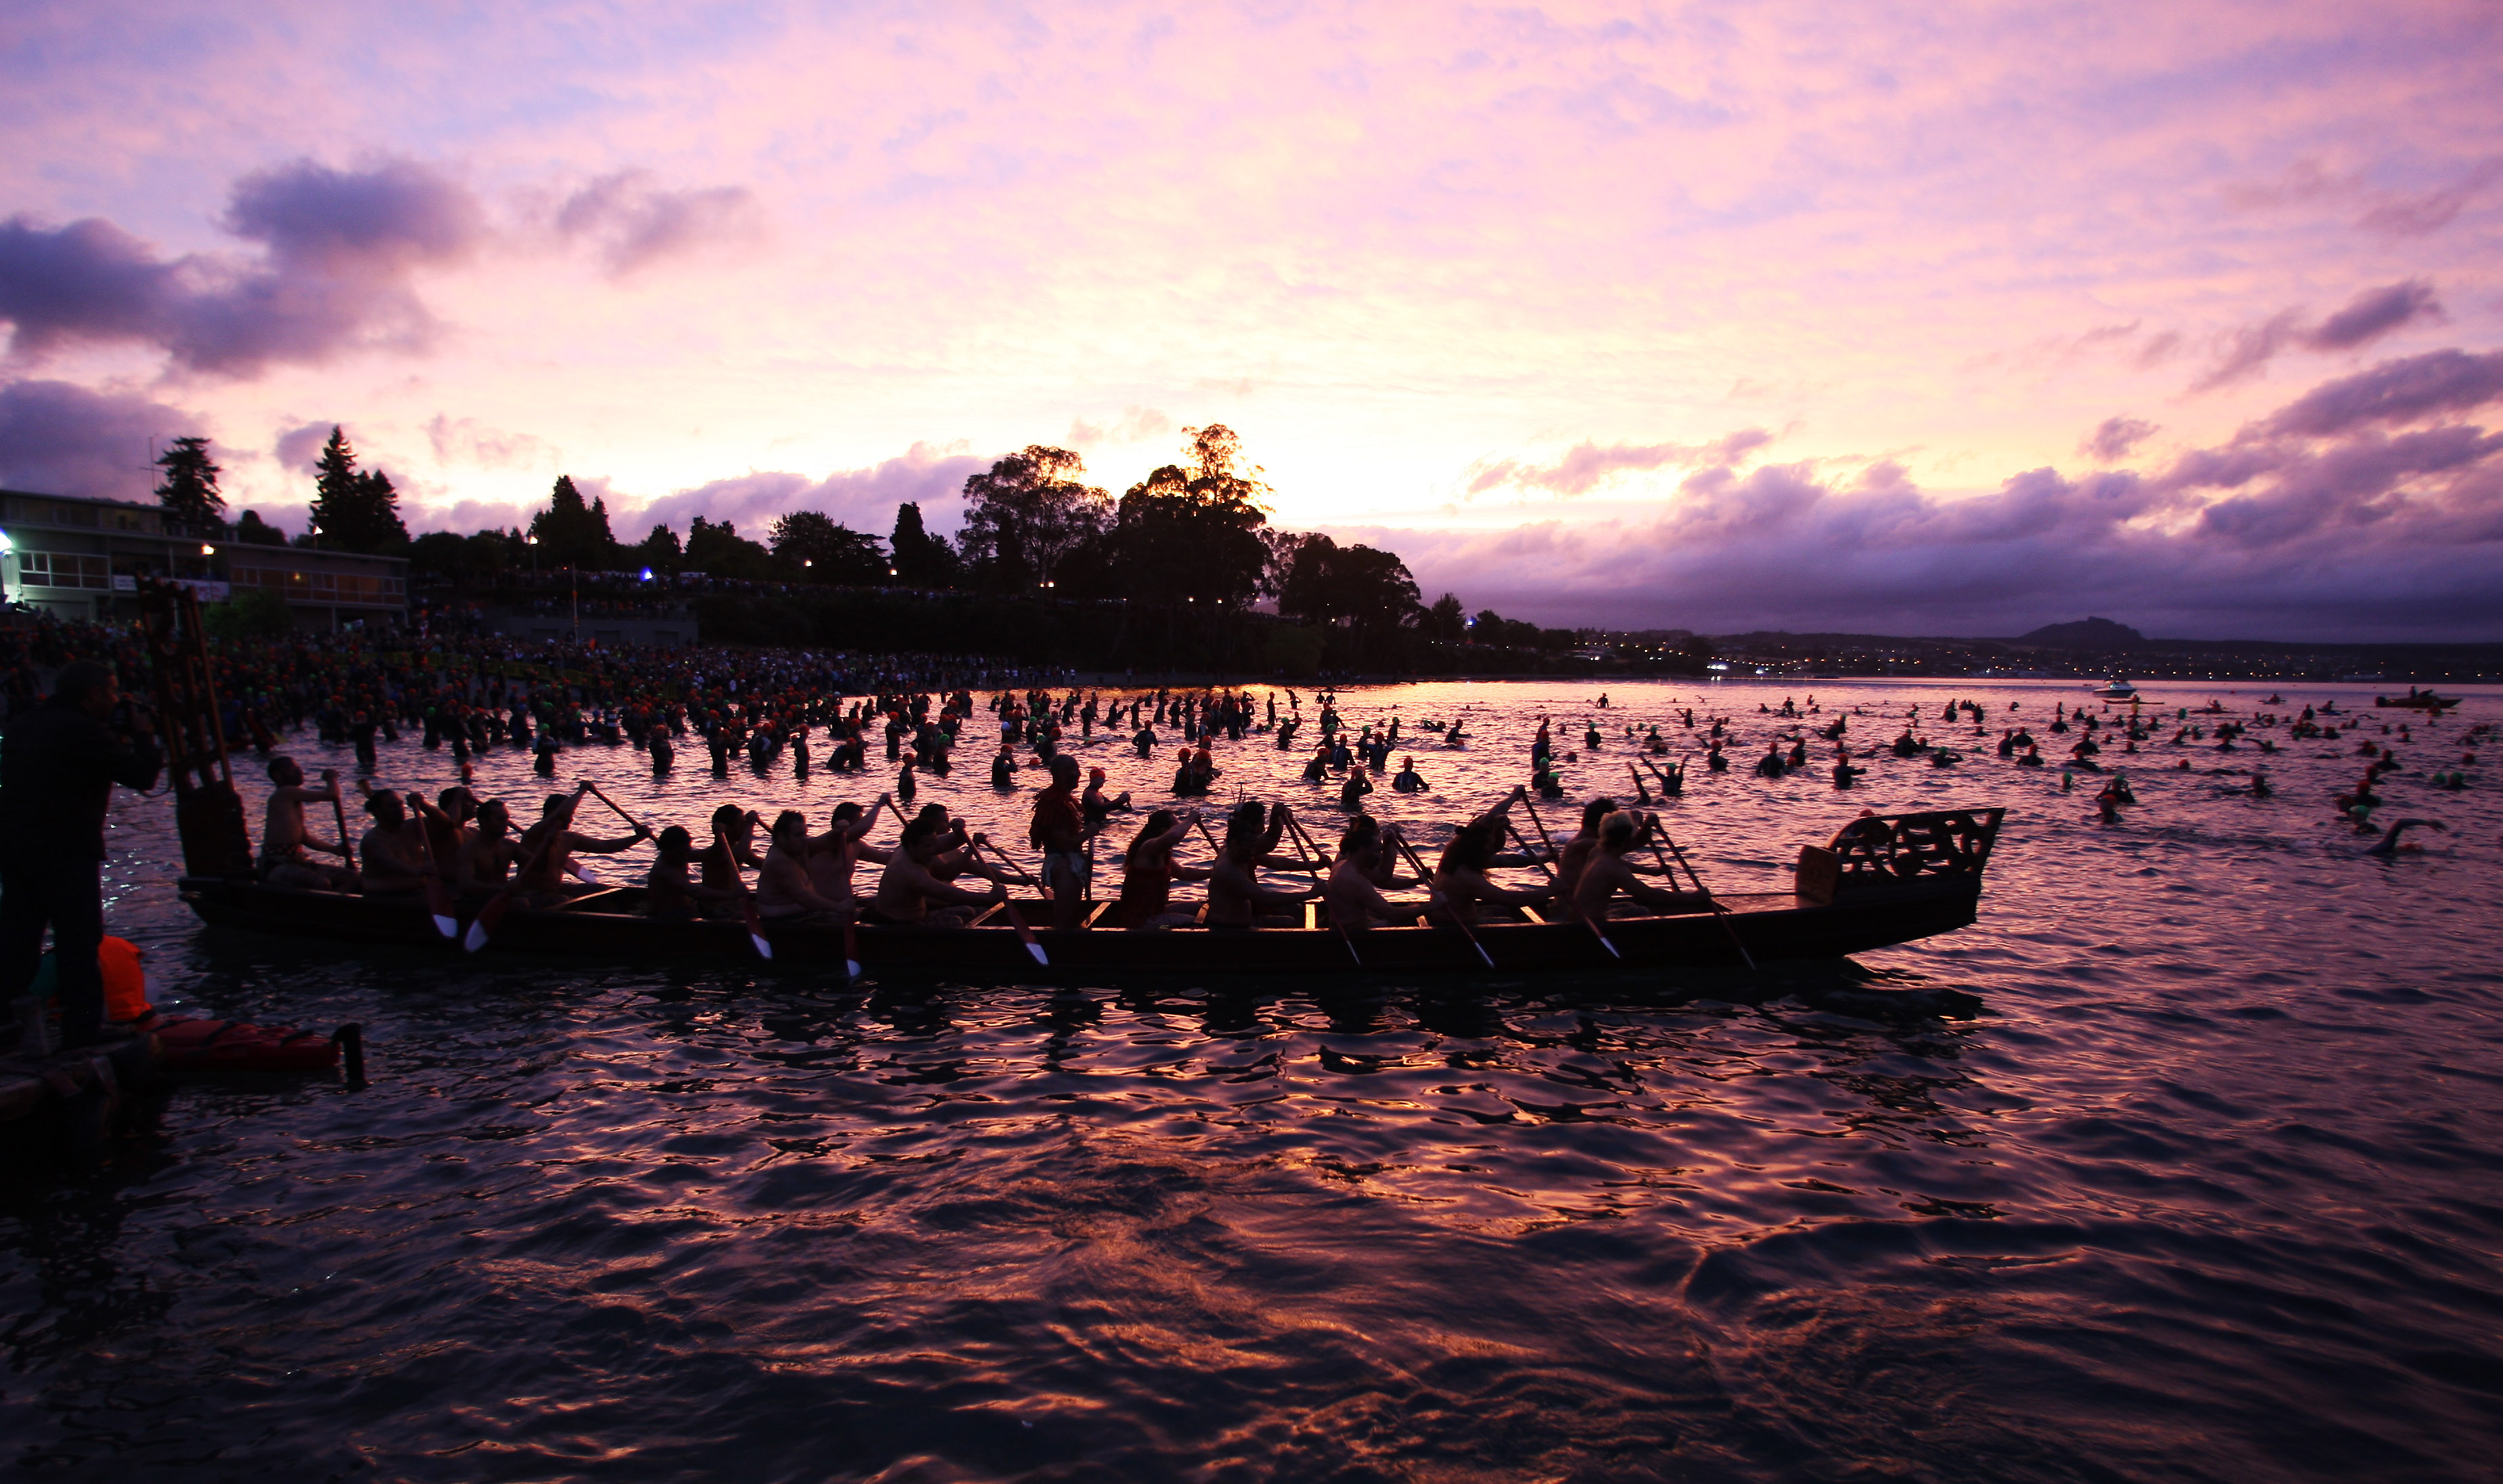 A maori Waka (war canoe) escorts competitors during March's NZ Ironman.